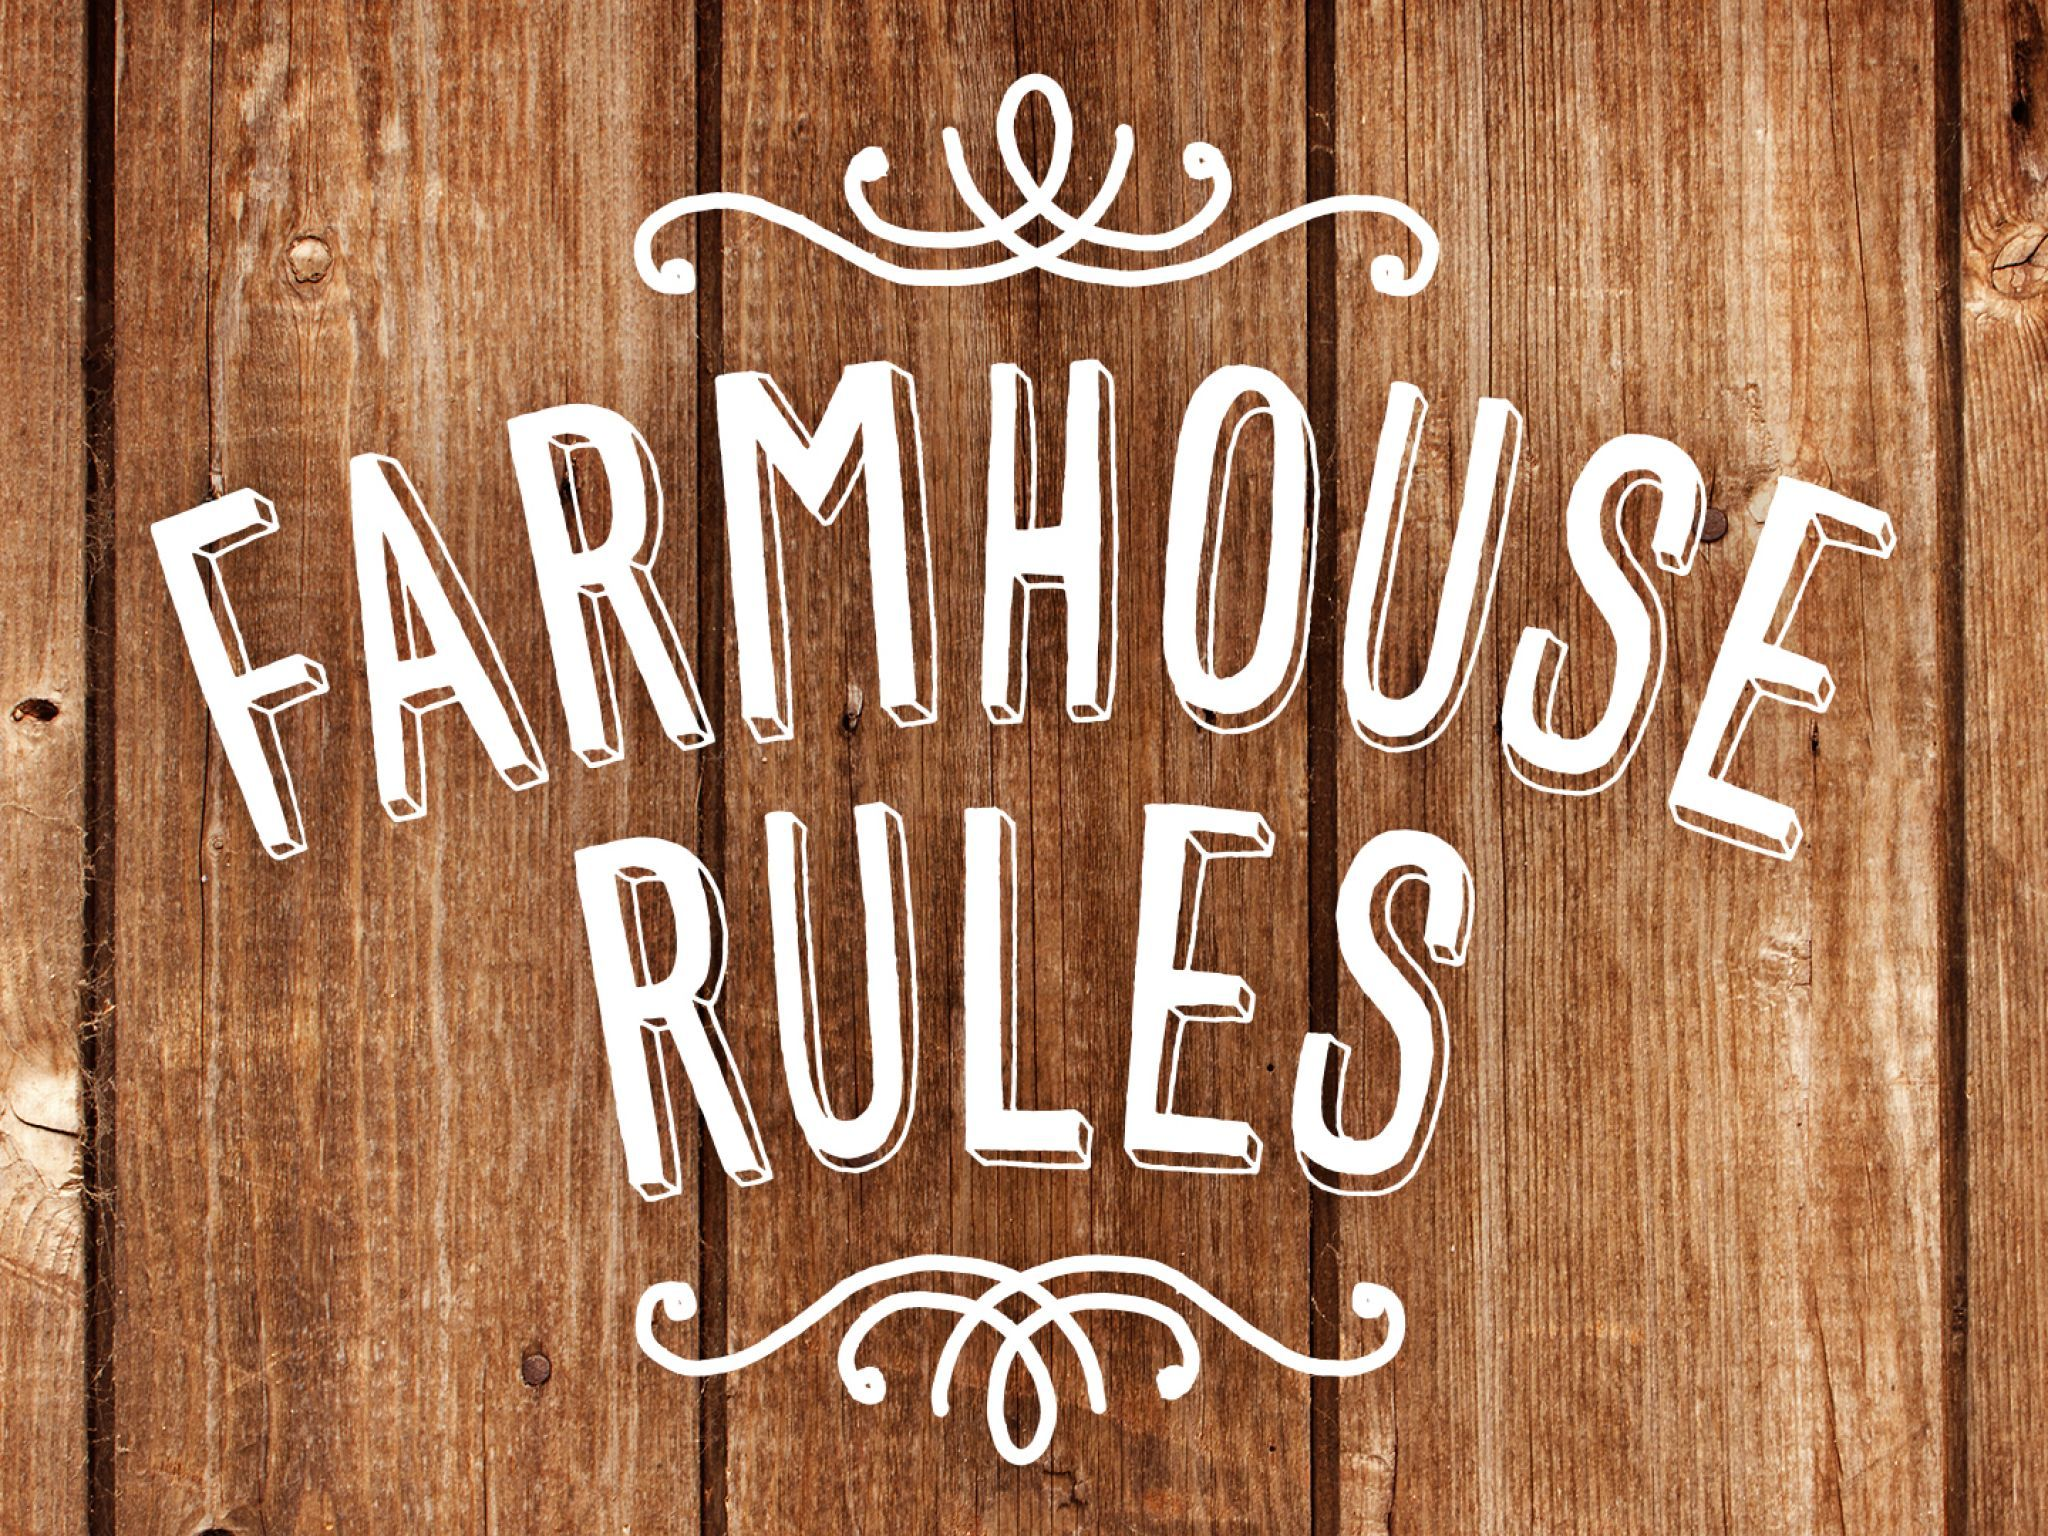 Farmhouse Rules is a lifestyle and cooking show centered